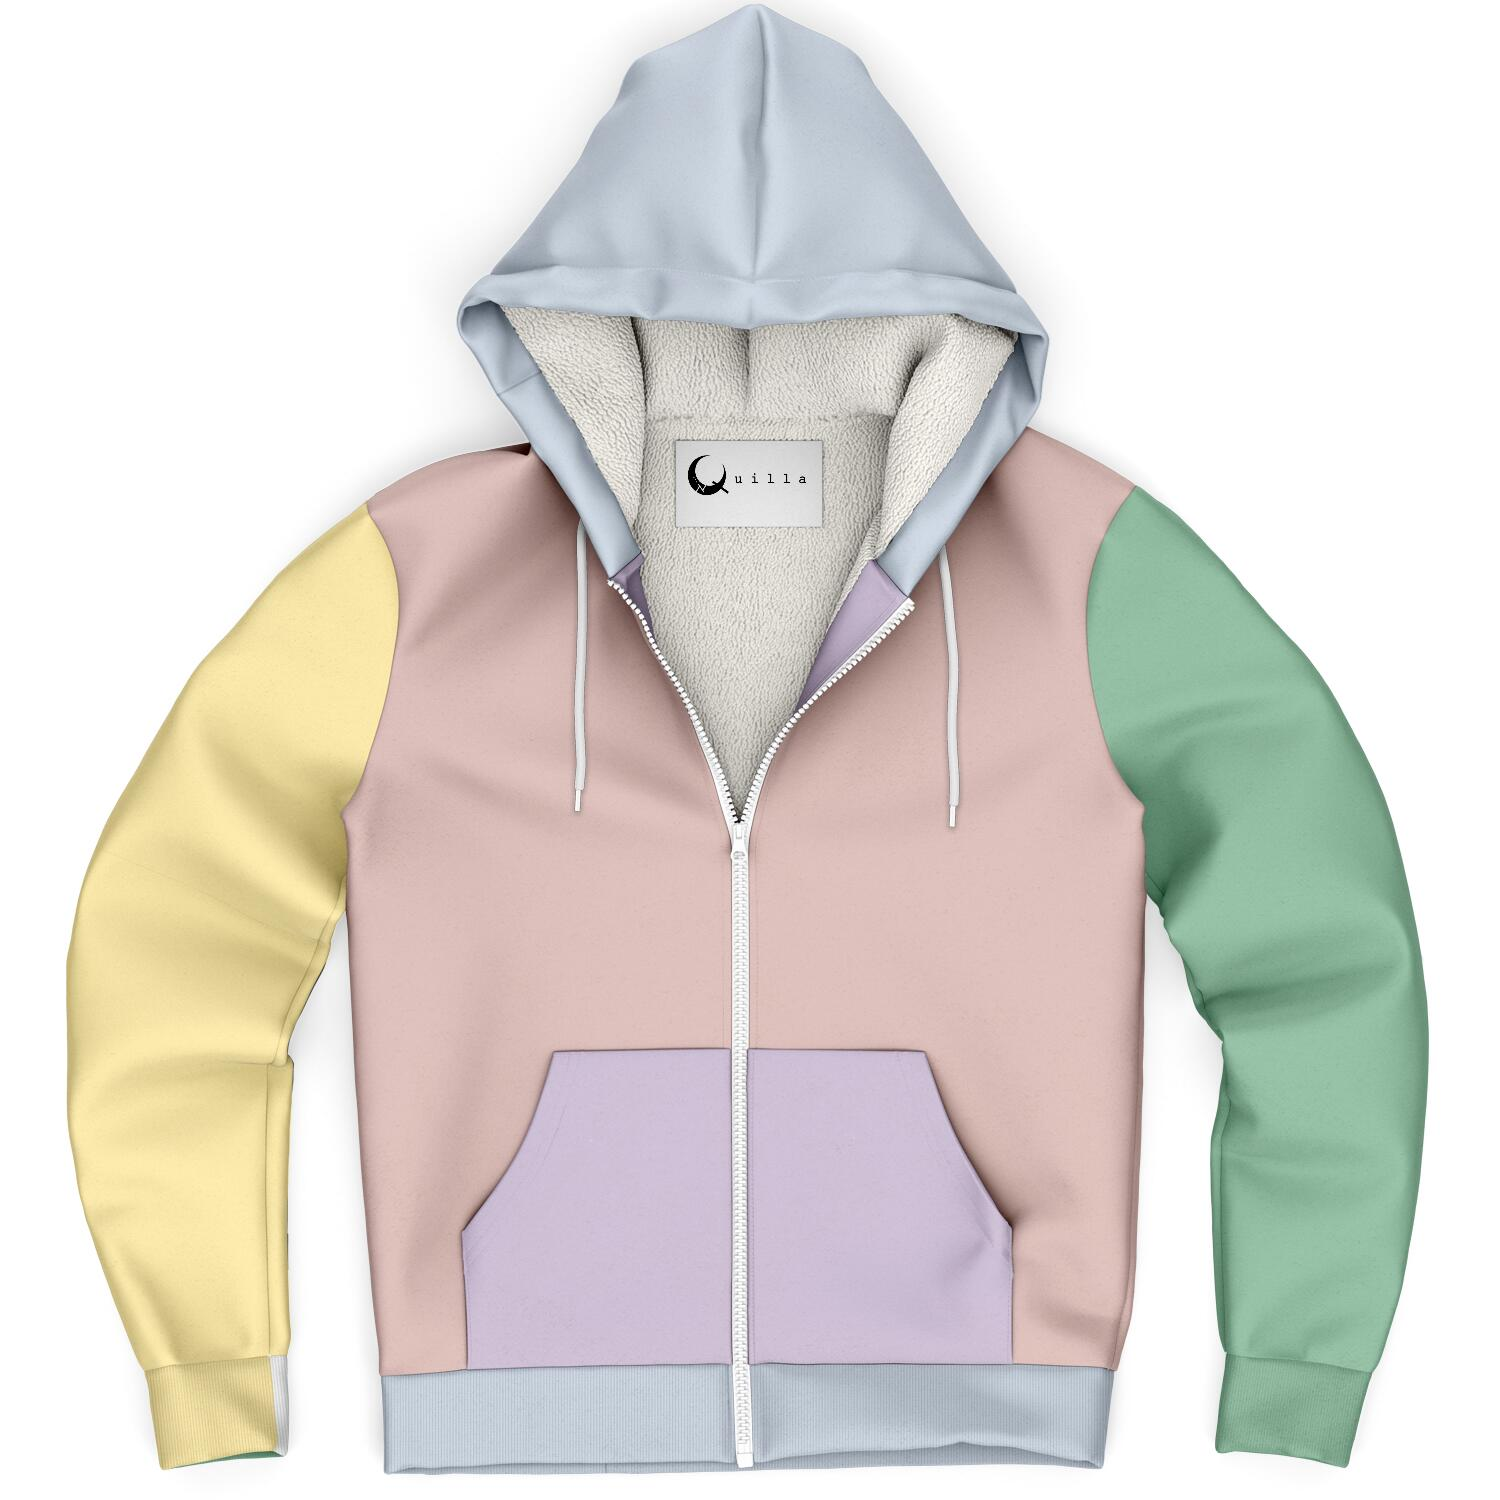 Limited Edition Pastel Microfleece Warm snuggle Hoodie